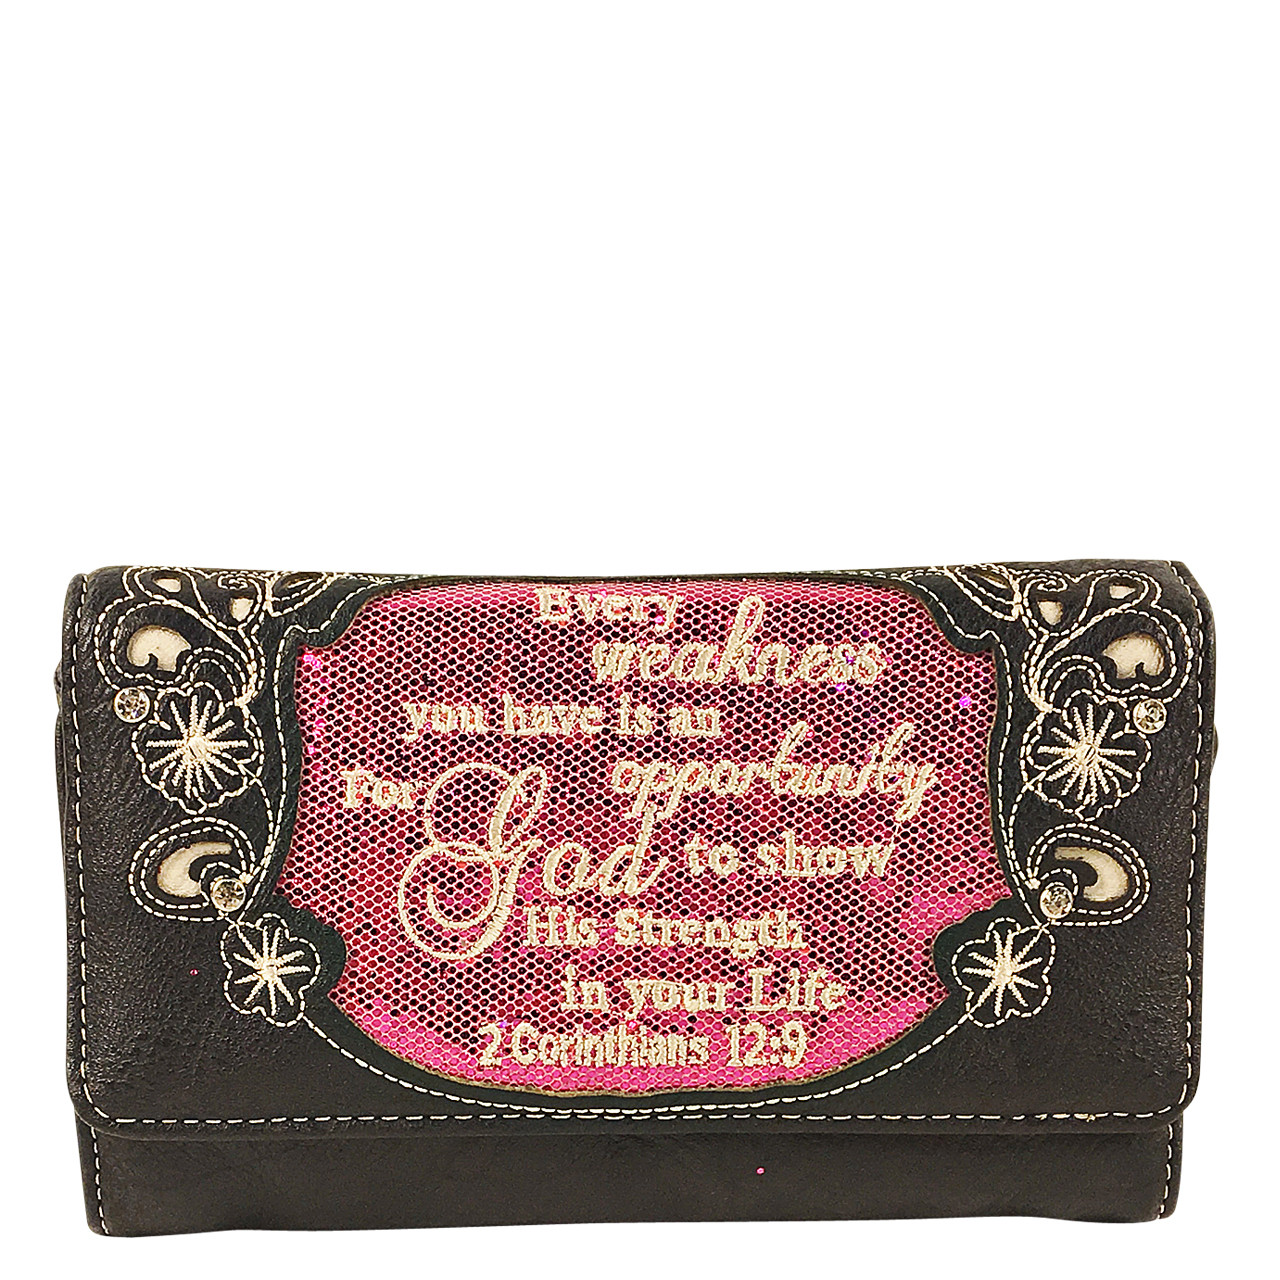 HOT PINK BIBLE LIFE QUOTE RHINESTONE STUDDED LOOK CLUTCH TRIFOLD WALLET